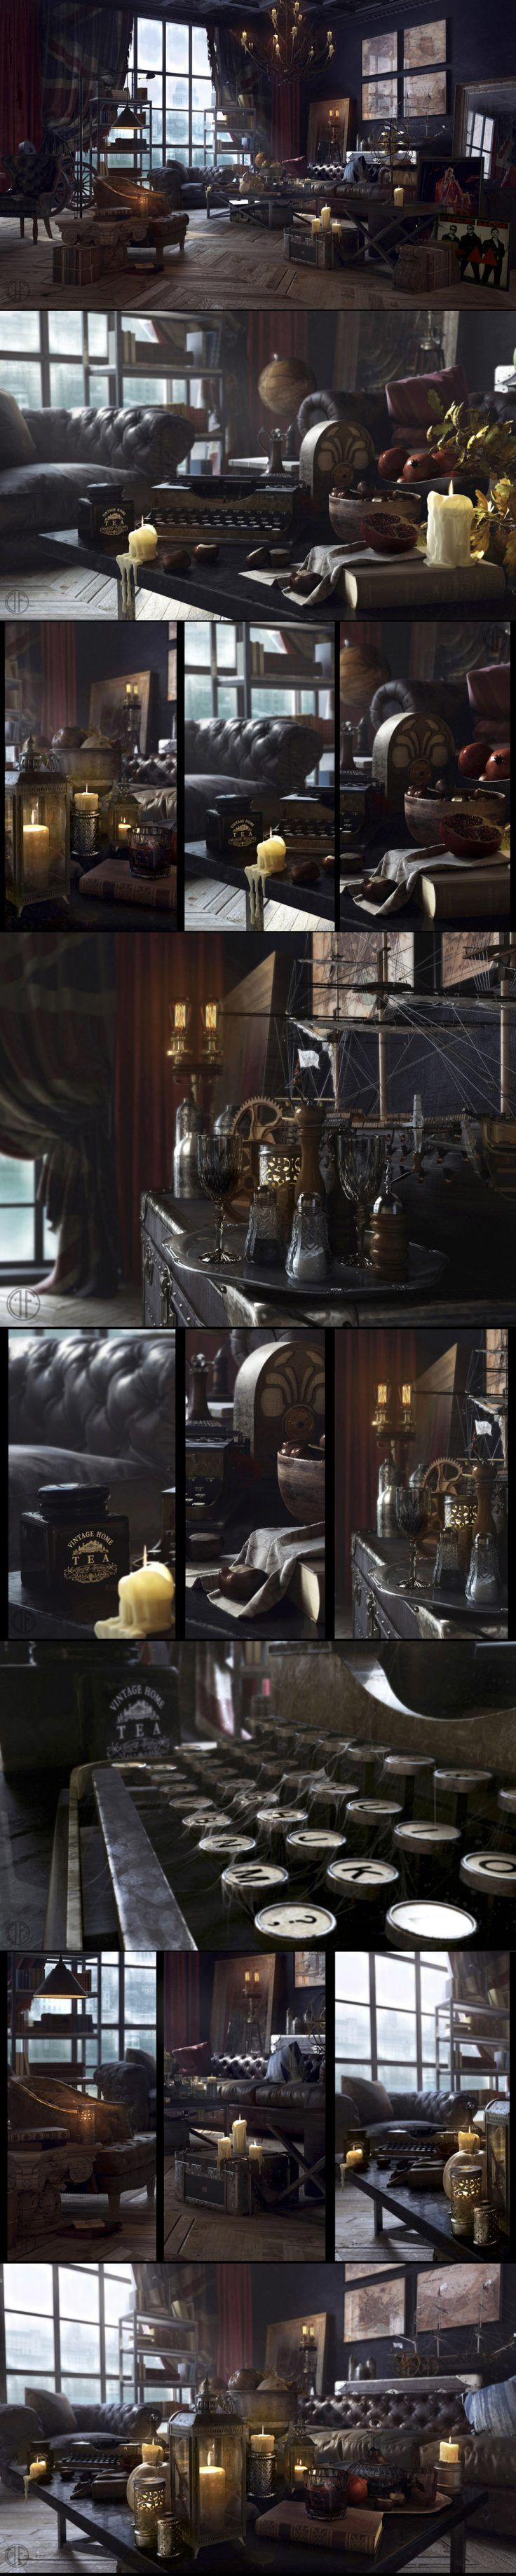 English interior by Denis Fomin 1000px X 4996px